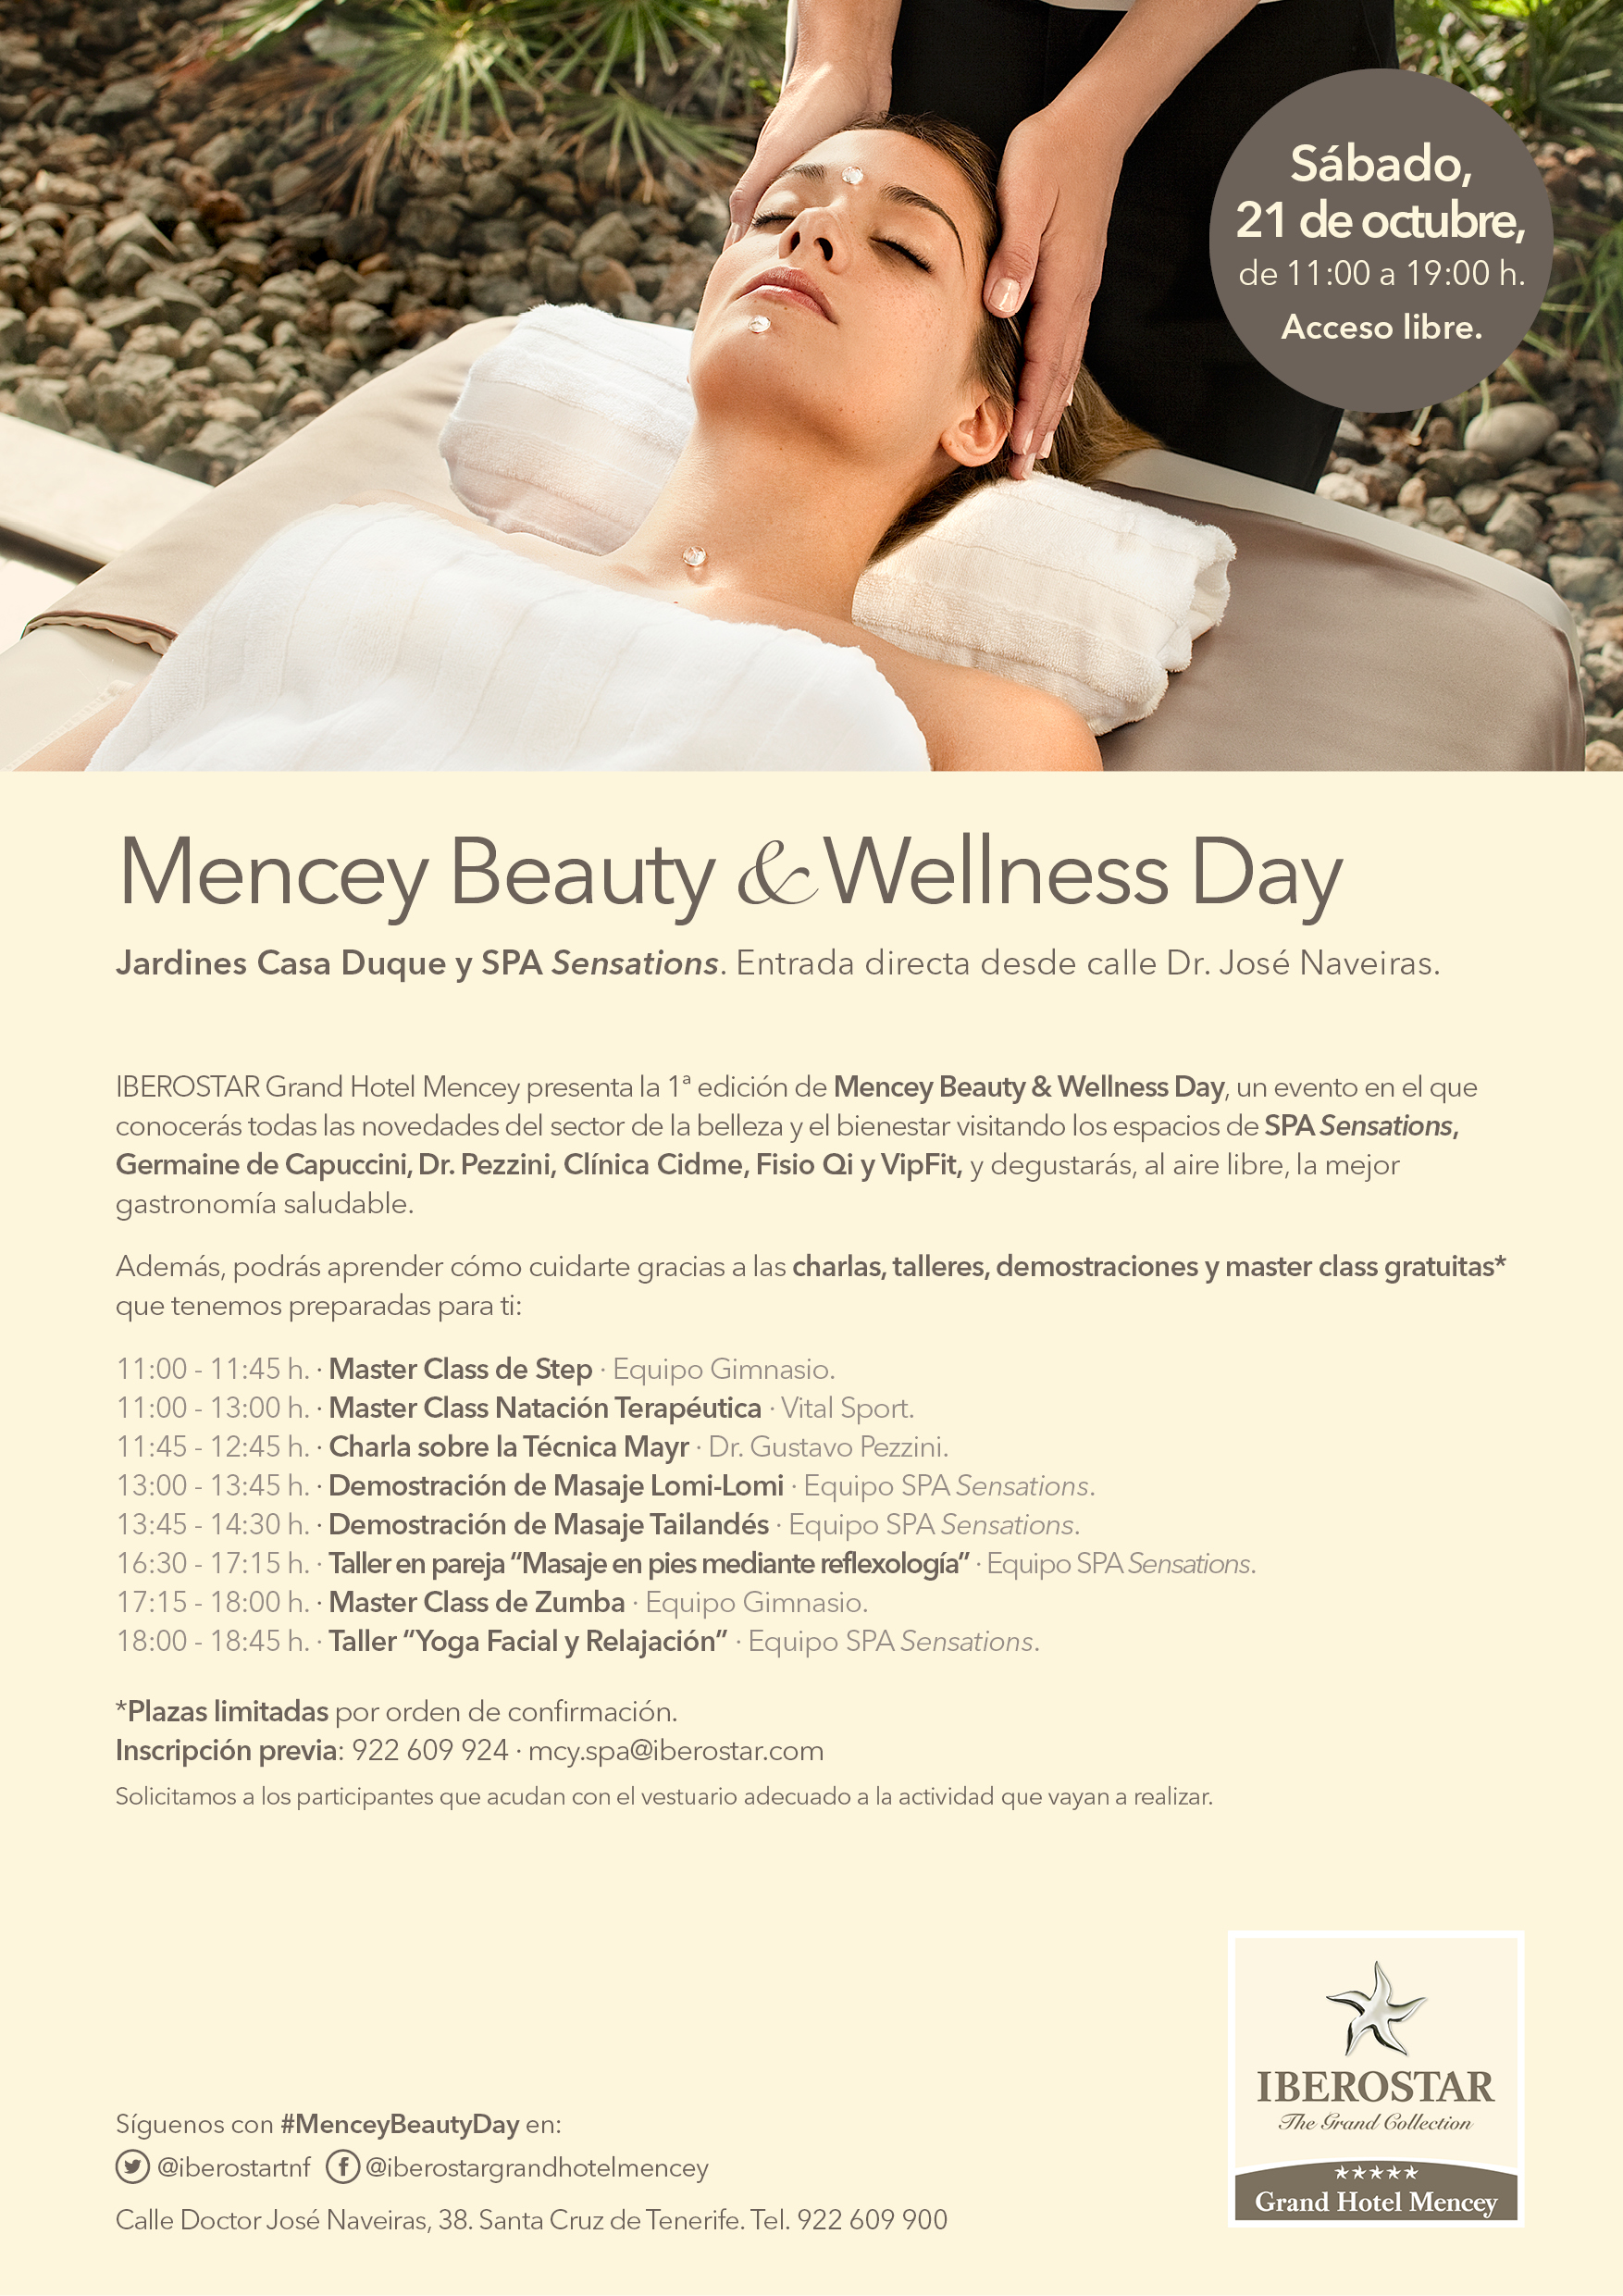 mencey-beauty-amp-wellness-day-mencey-beauty--wellness-day